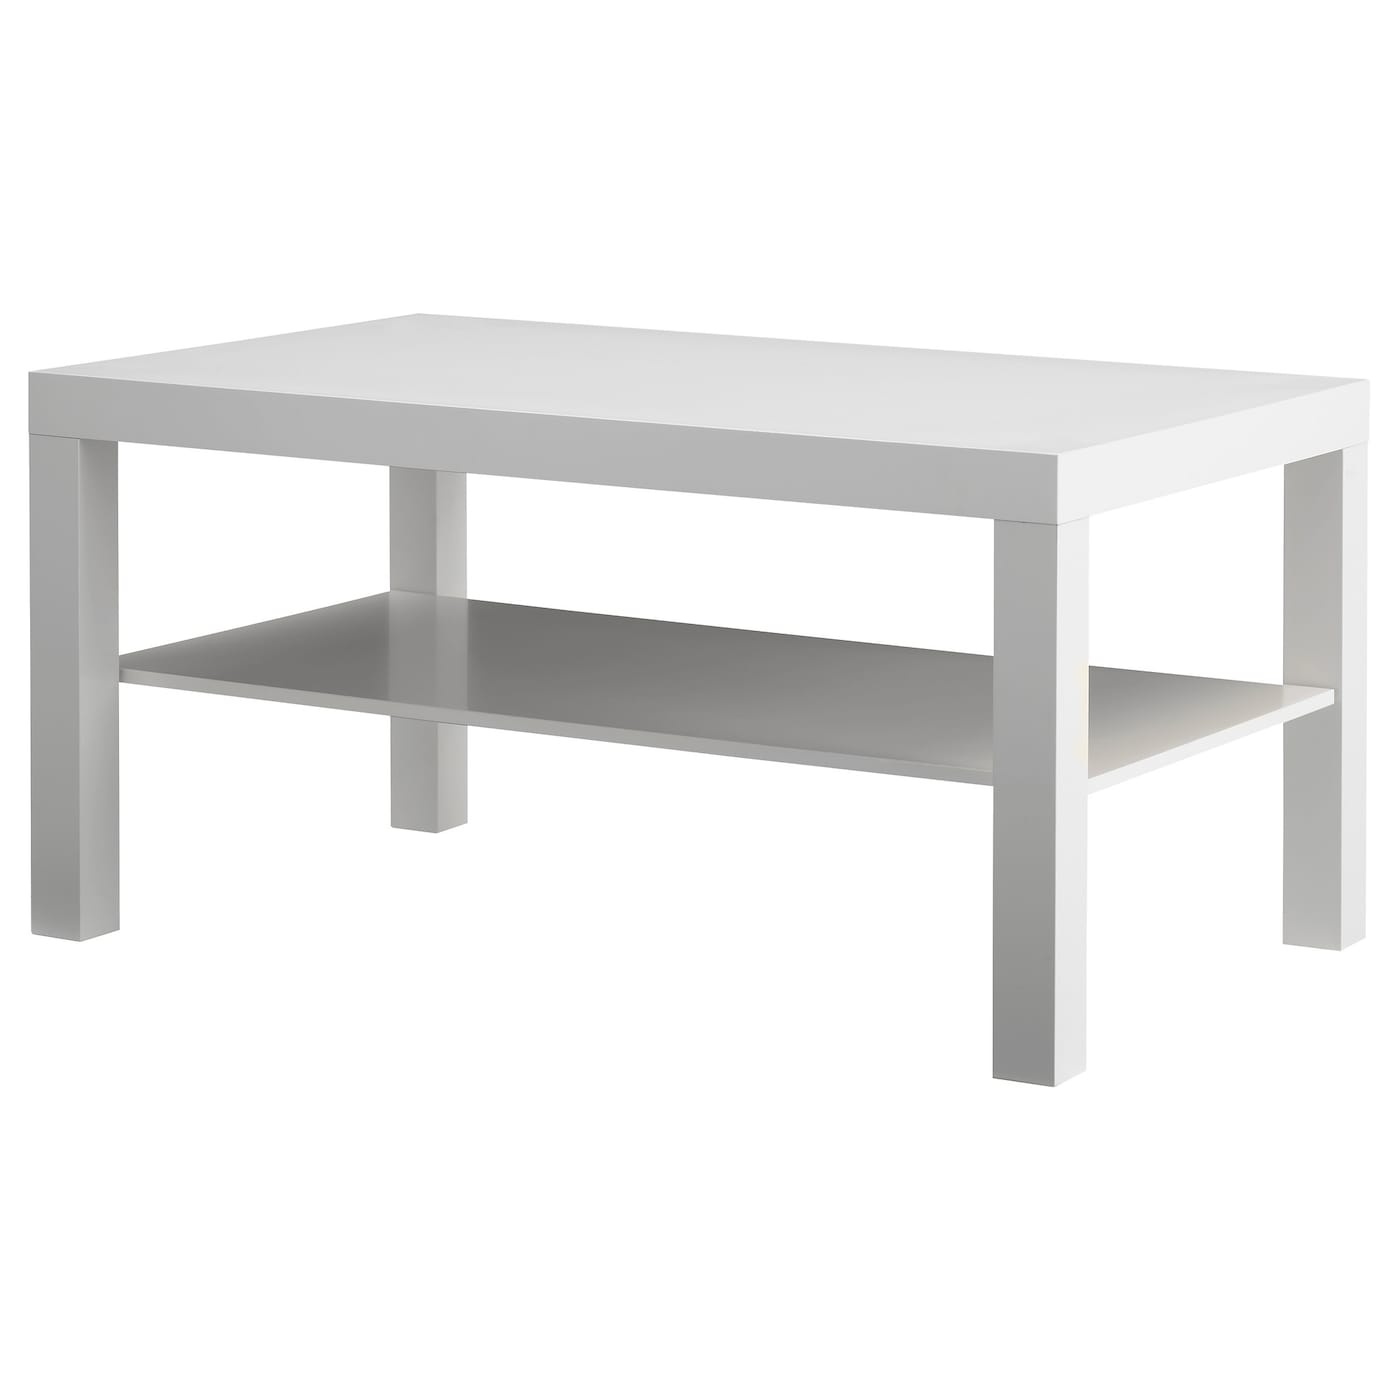 Lack coffee table white 90x55 cm ikea - Table basse noir laque ikea ...